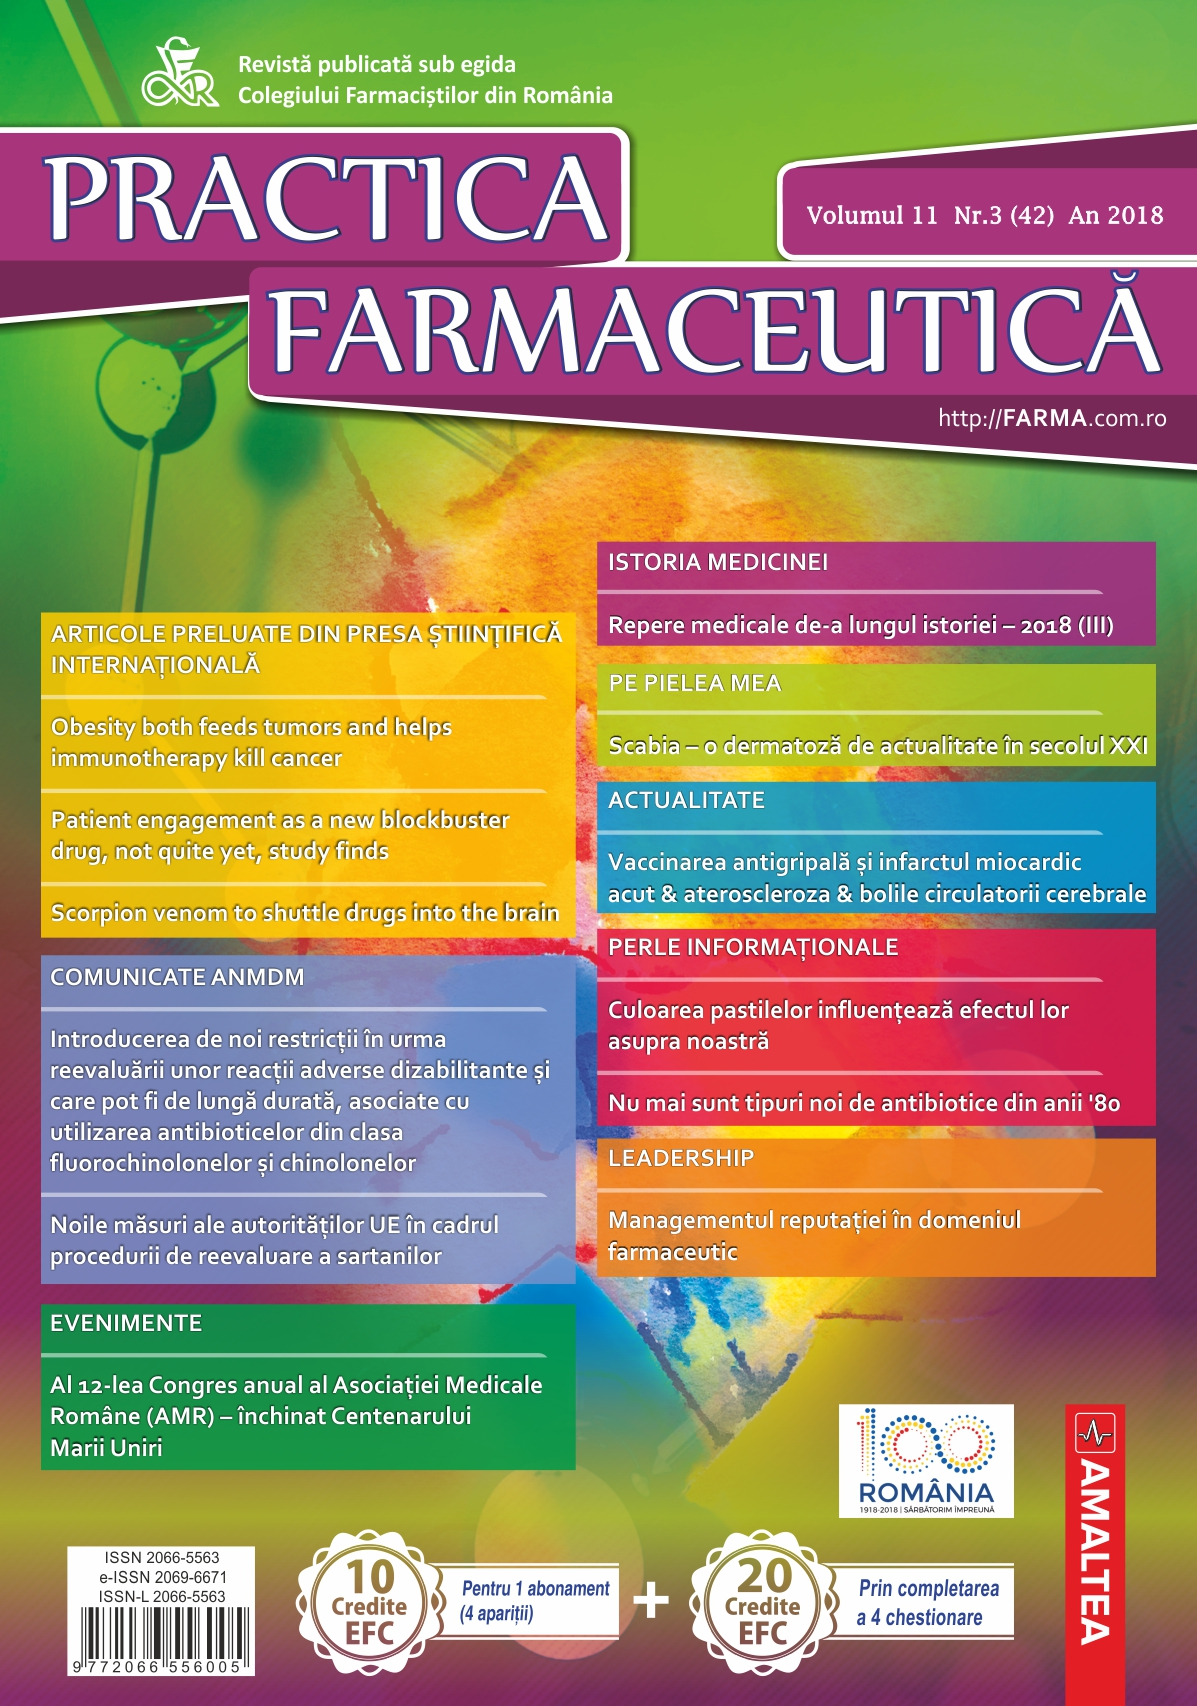 Revista Practica Farmaceutica, Vol. 11, Nr. 3 (42), 2018